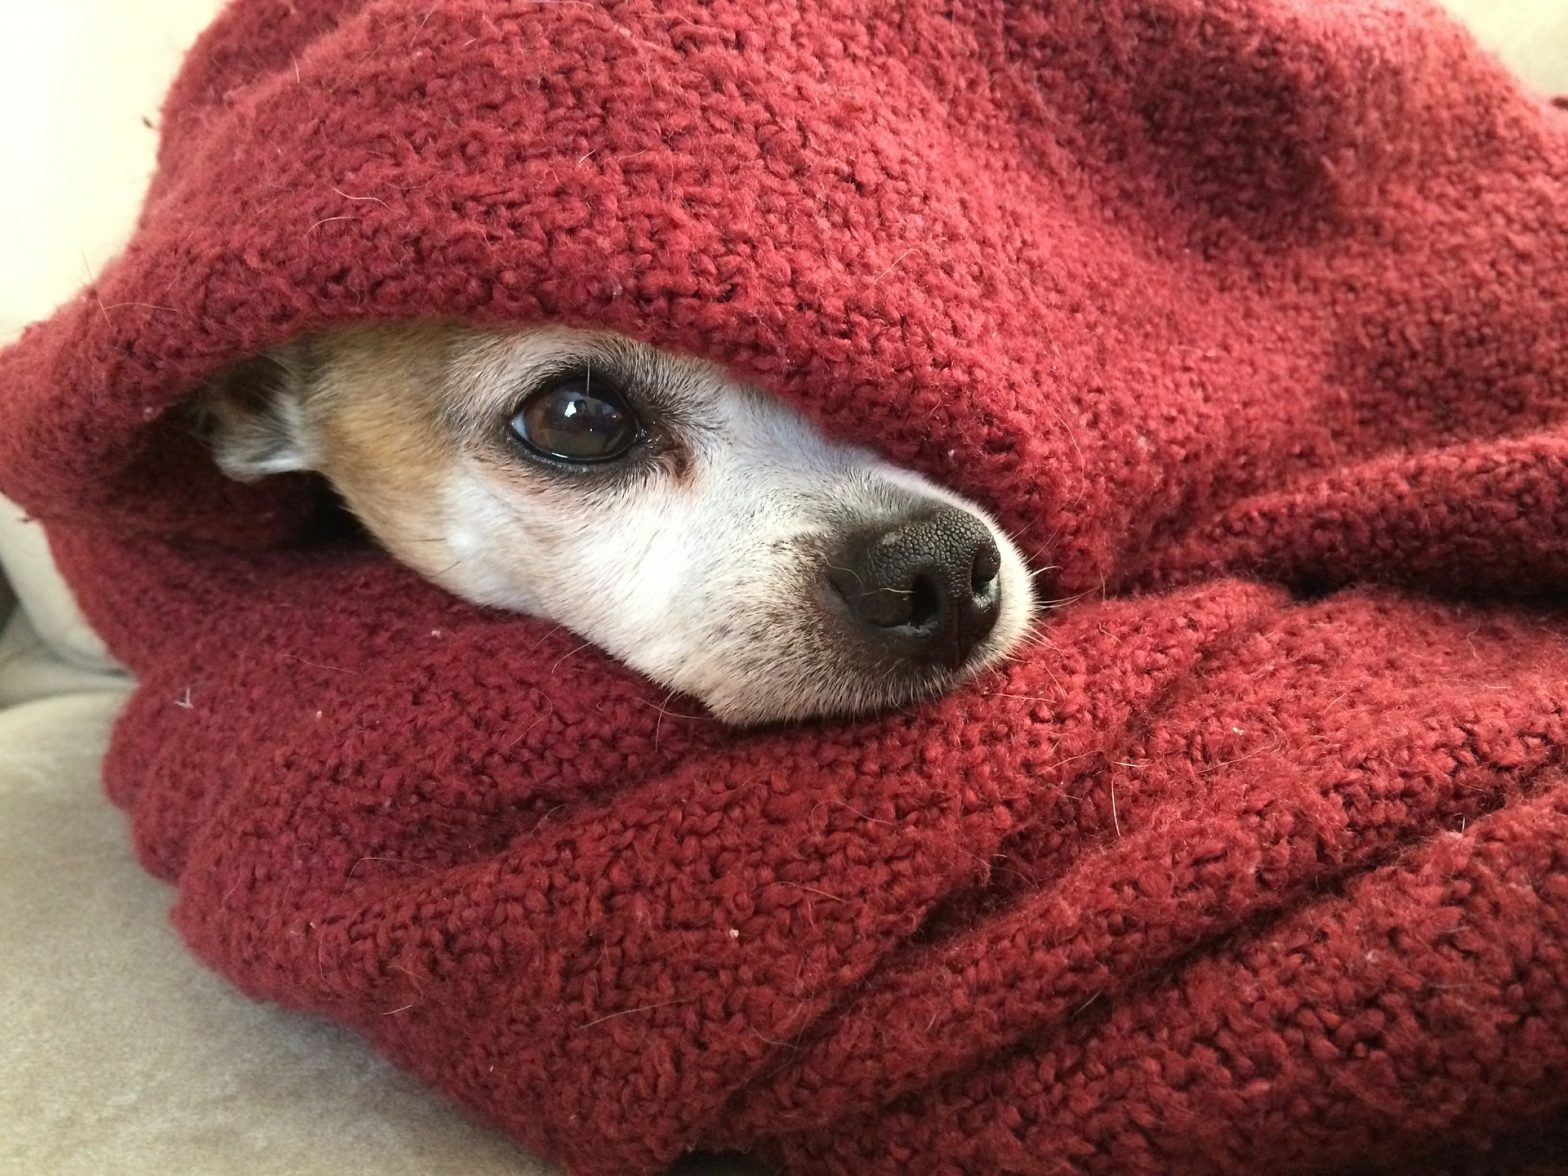 Chihuahua wrapped in a blanket